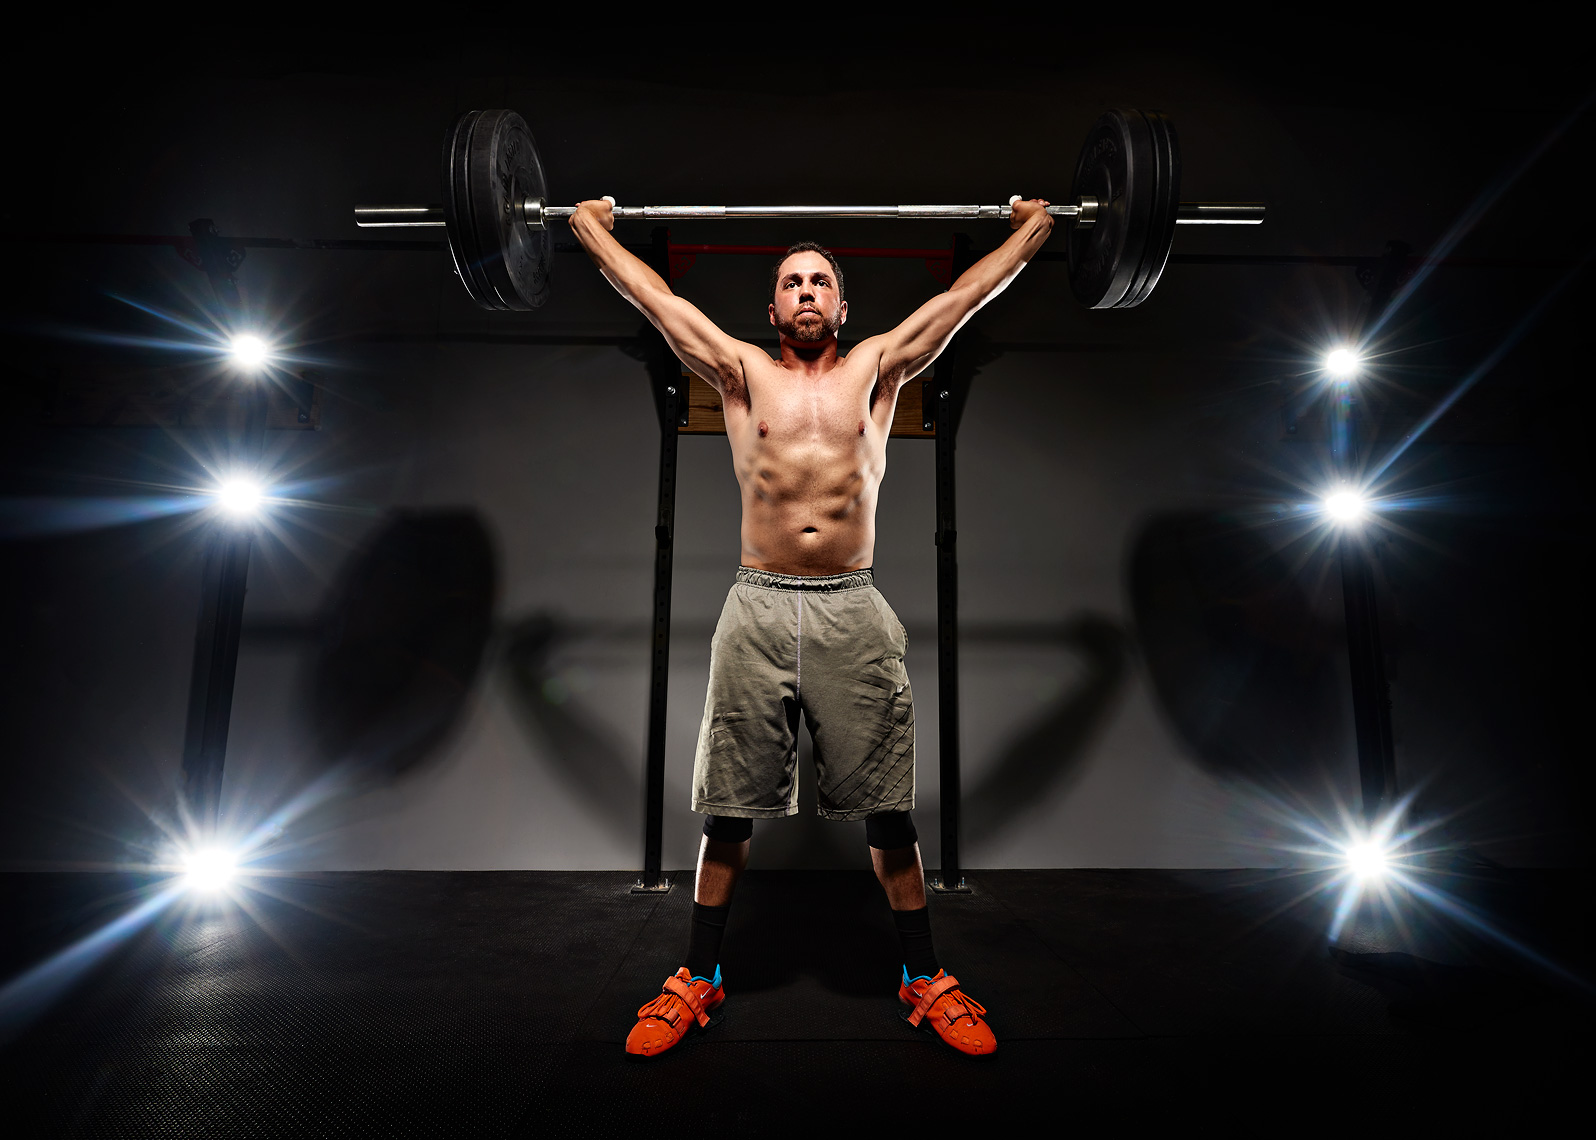 Crossfit Weight Lifting Portrait with lights behind lifter.